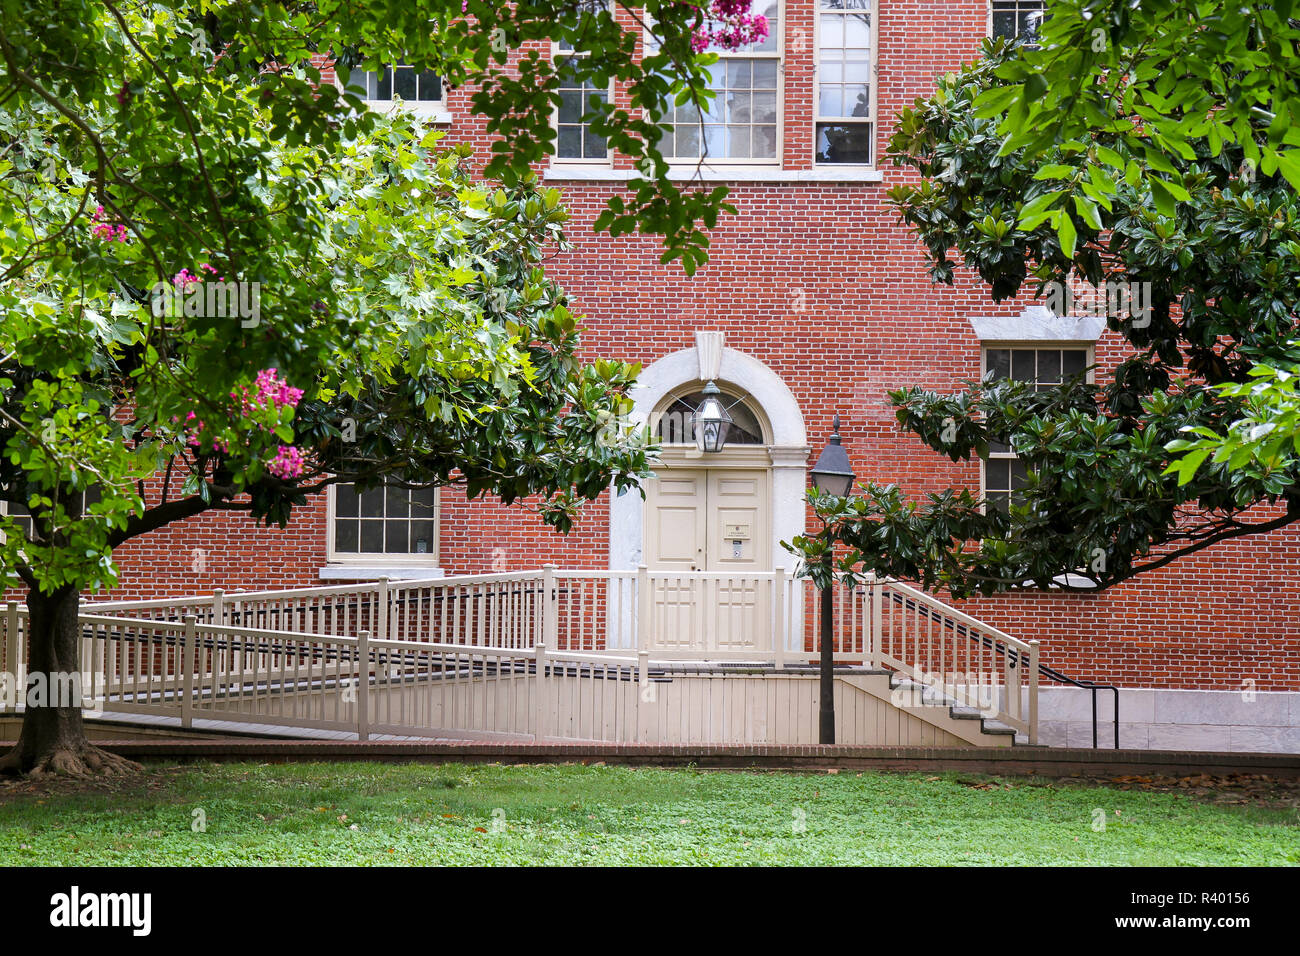 Handicap-accessible entrance to Carpenters' Hall, Independence National Historical Park, Philadelphia, Pennsylvania, Usa. - Stock Image